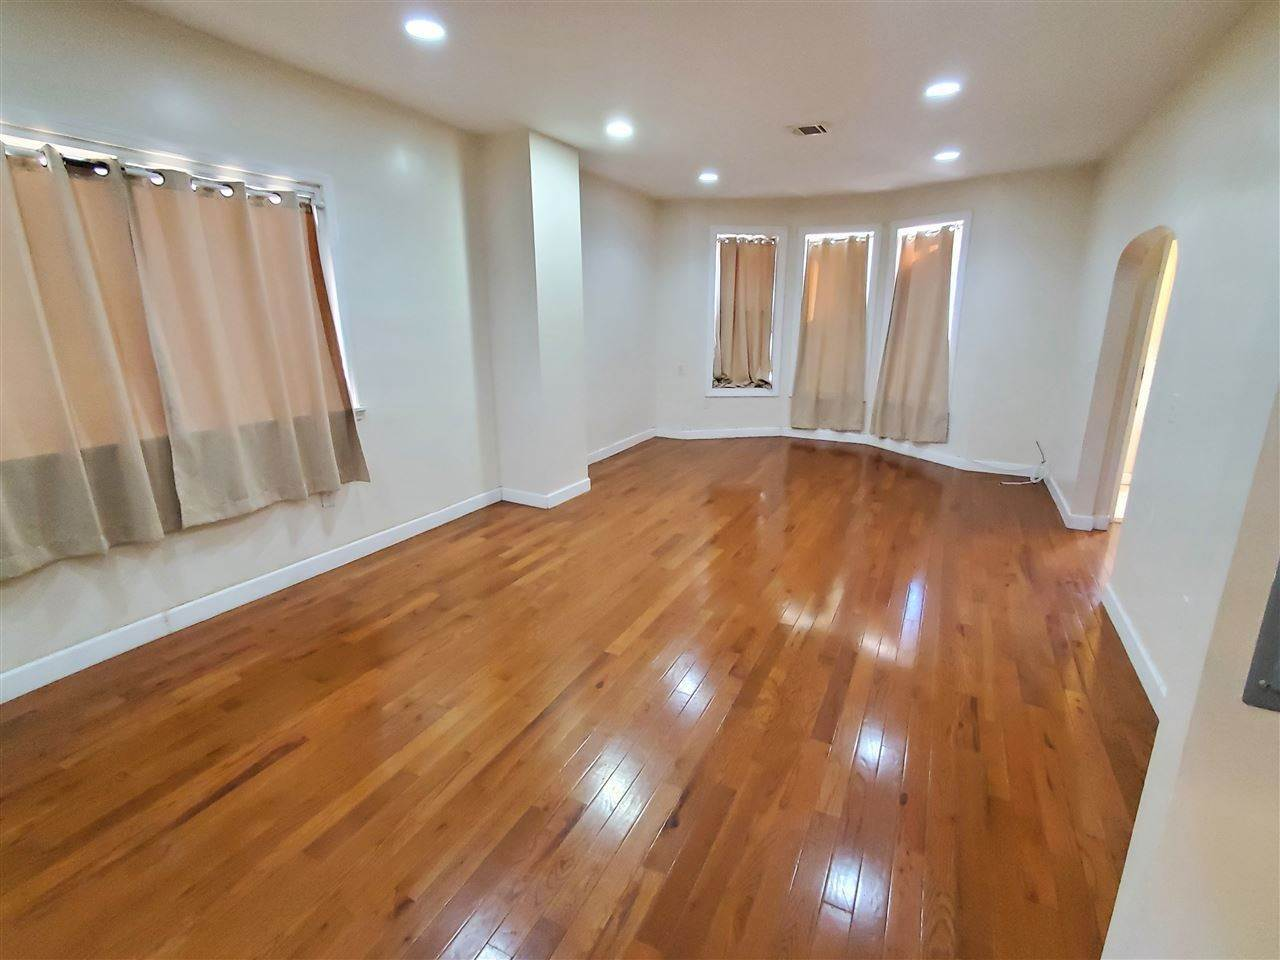 10. Single Family Home for Rent at 27 NELSON AVENUE #APT # Jersey City, New Jersey, 07307 United States